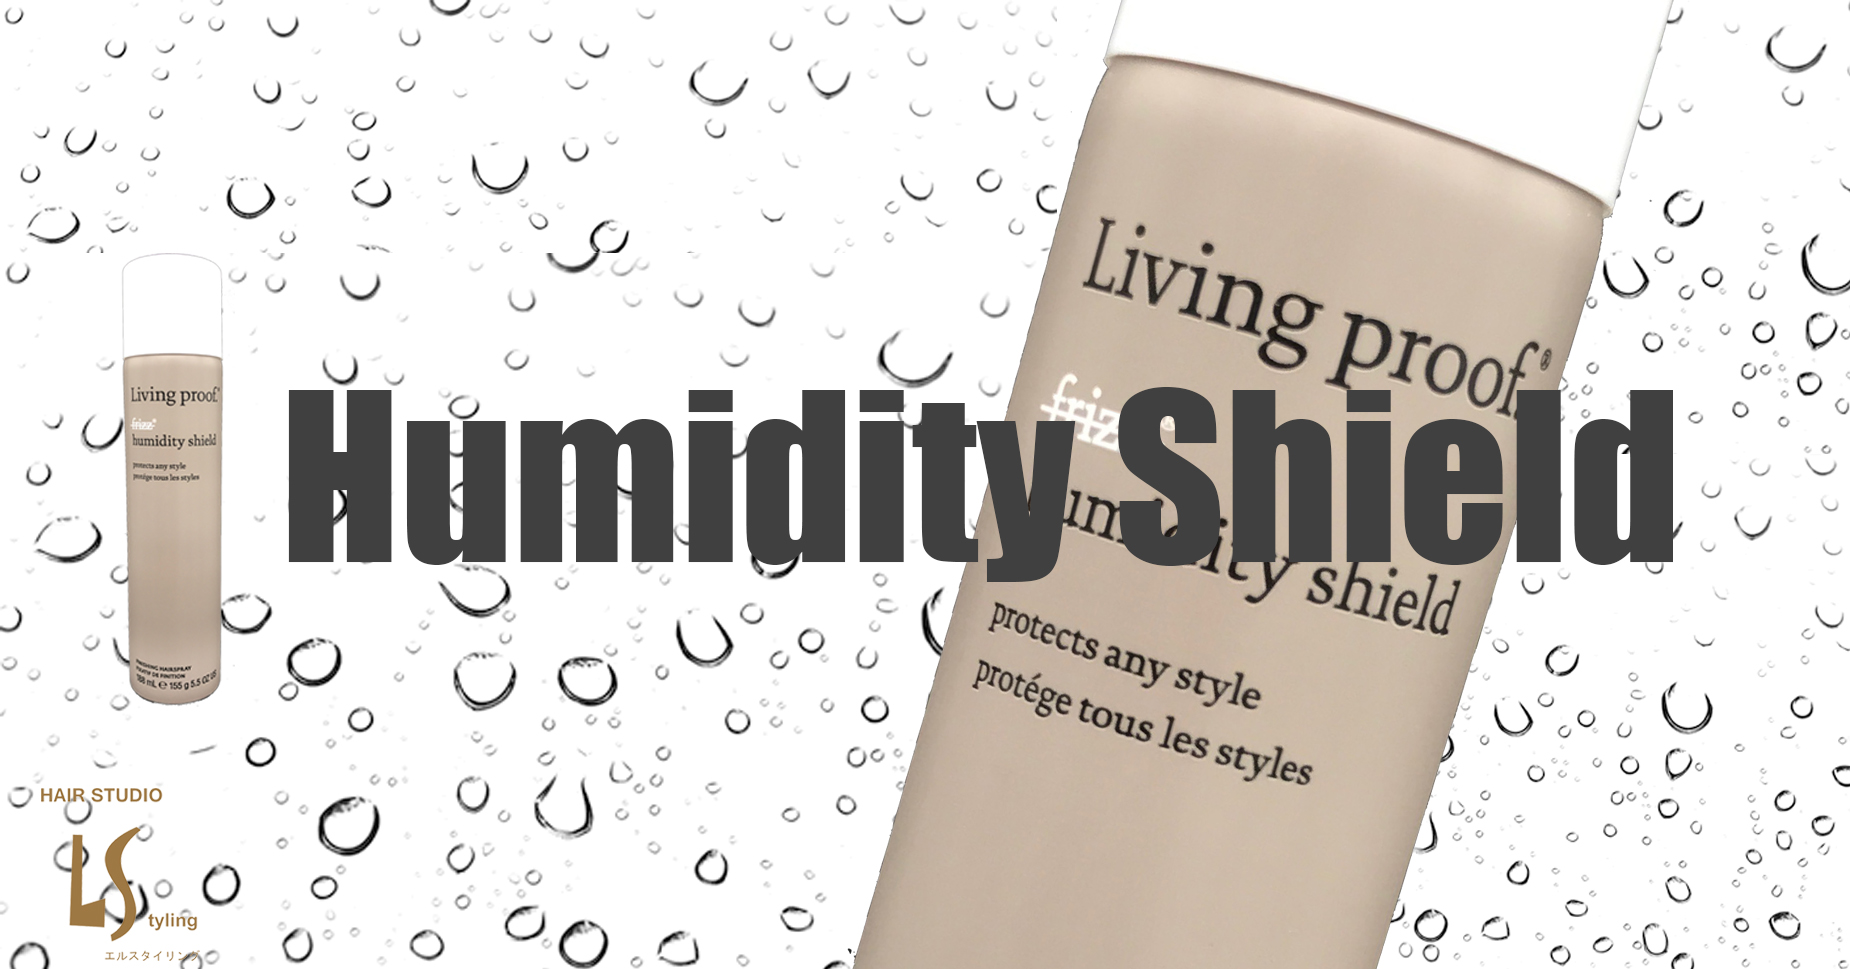 Humidity Shield